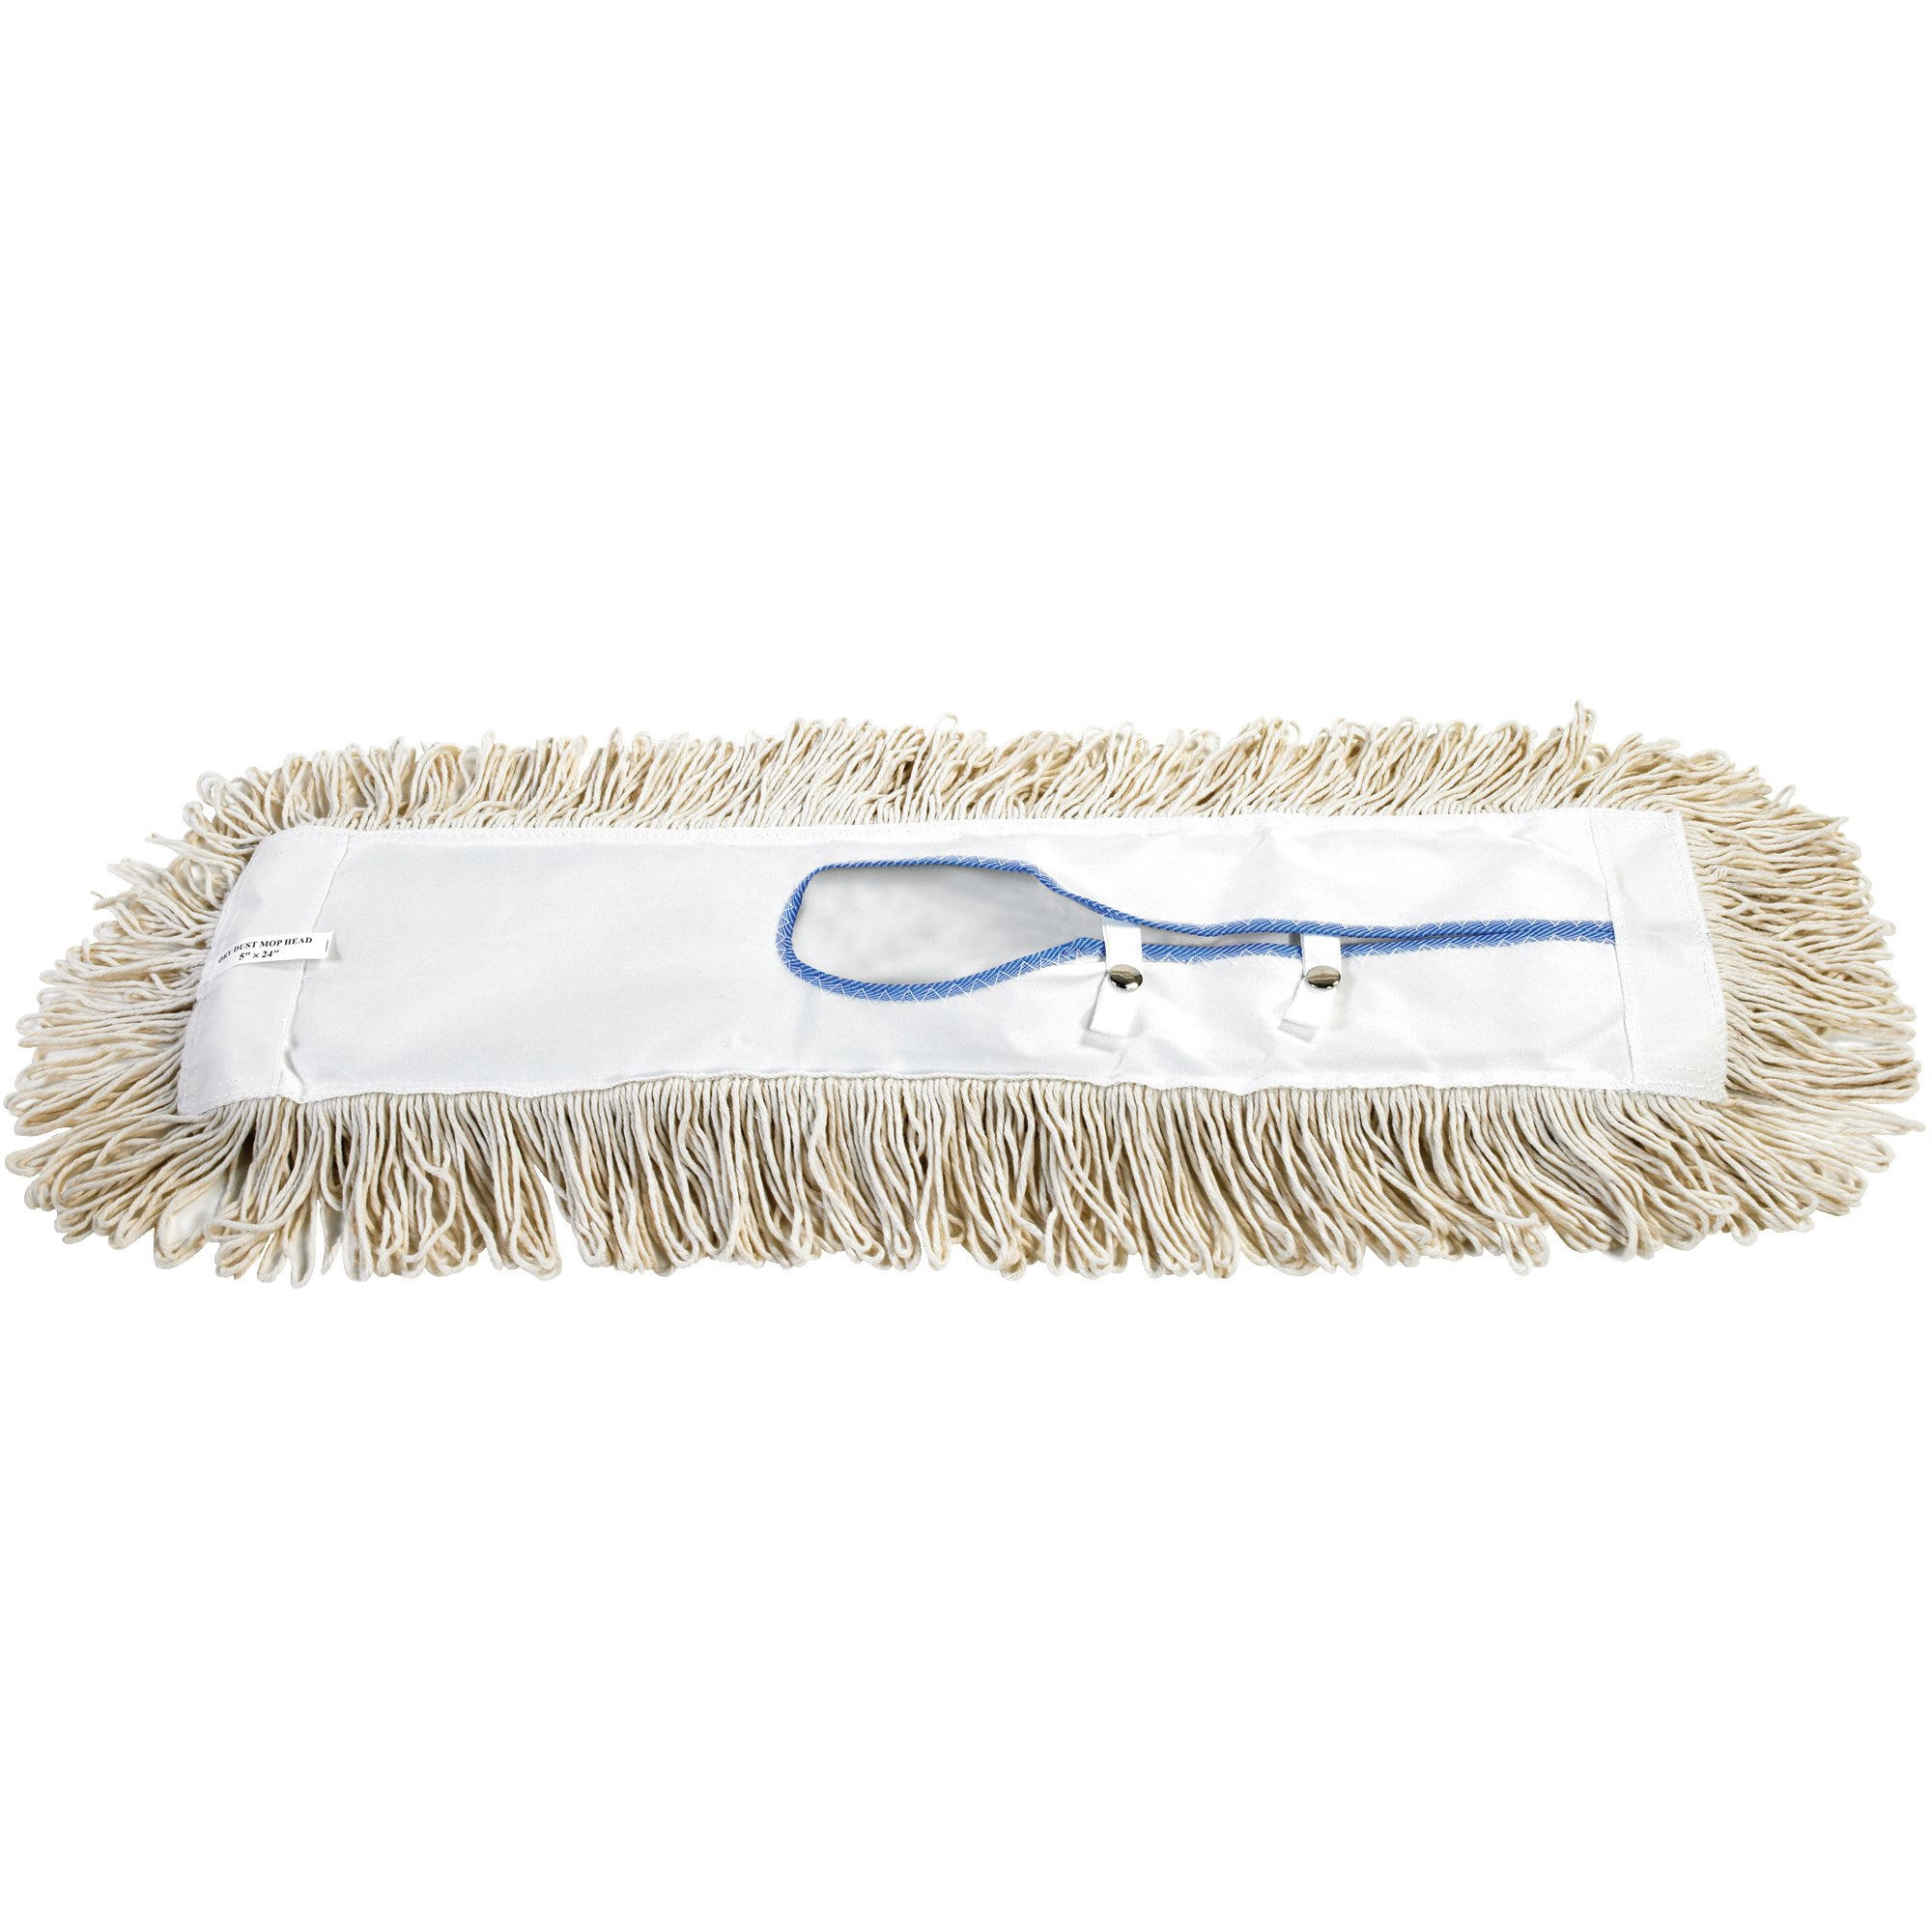 O-Cedar JAN137 36'' Economy Dry Dust Mop Replacement Heads (Pack of 12)